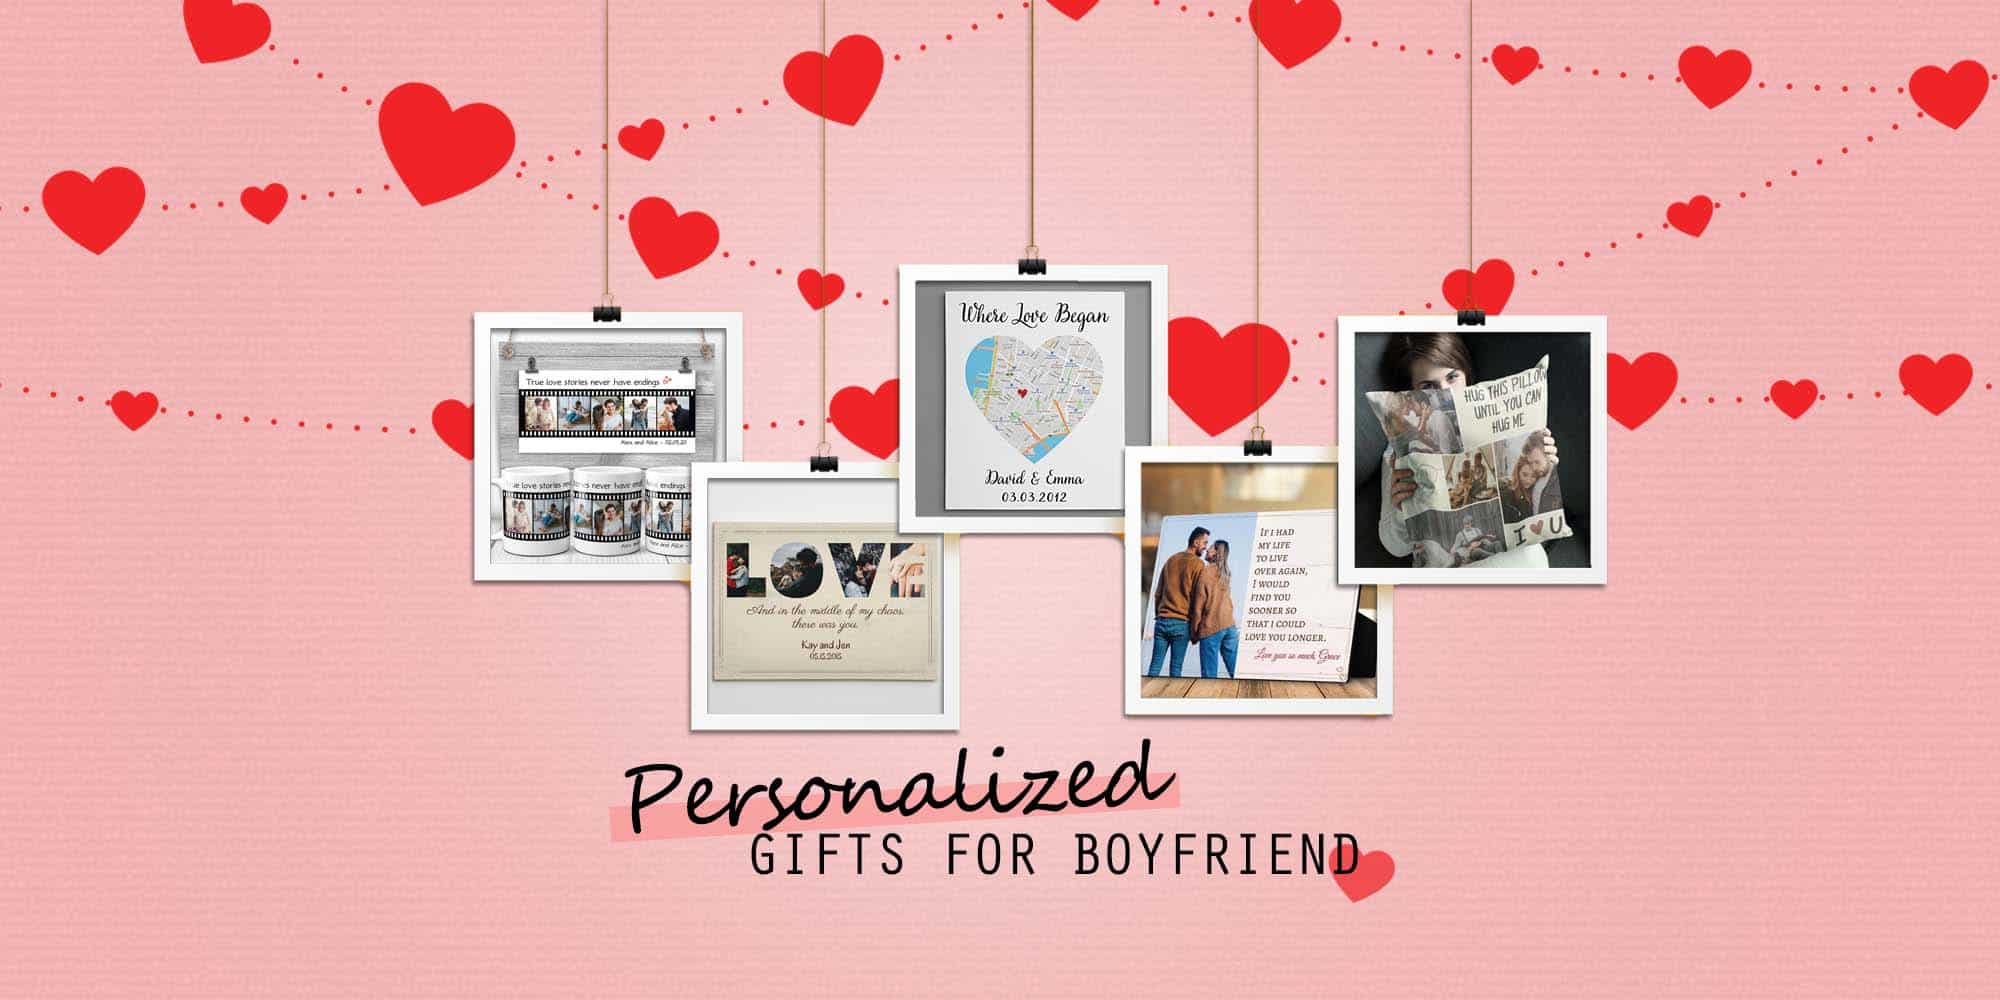 30+ Personalized Gifts for Your Boyfriend to Make Him Feel Special (2021)